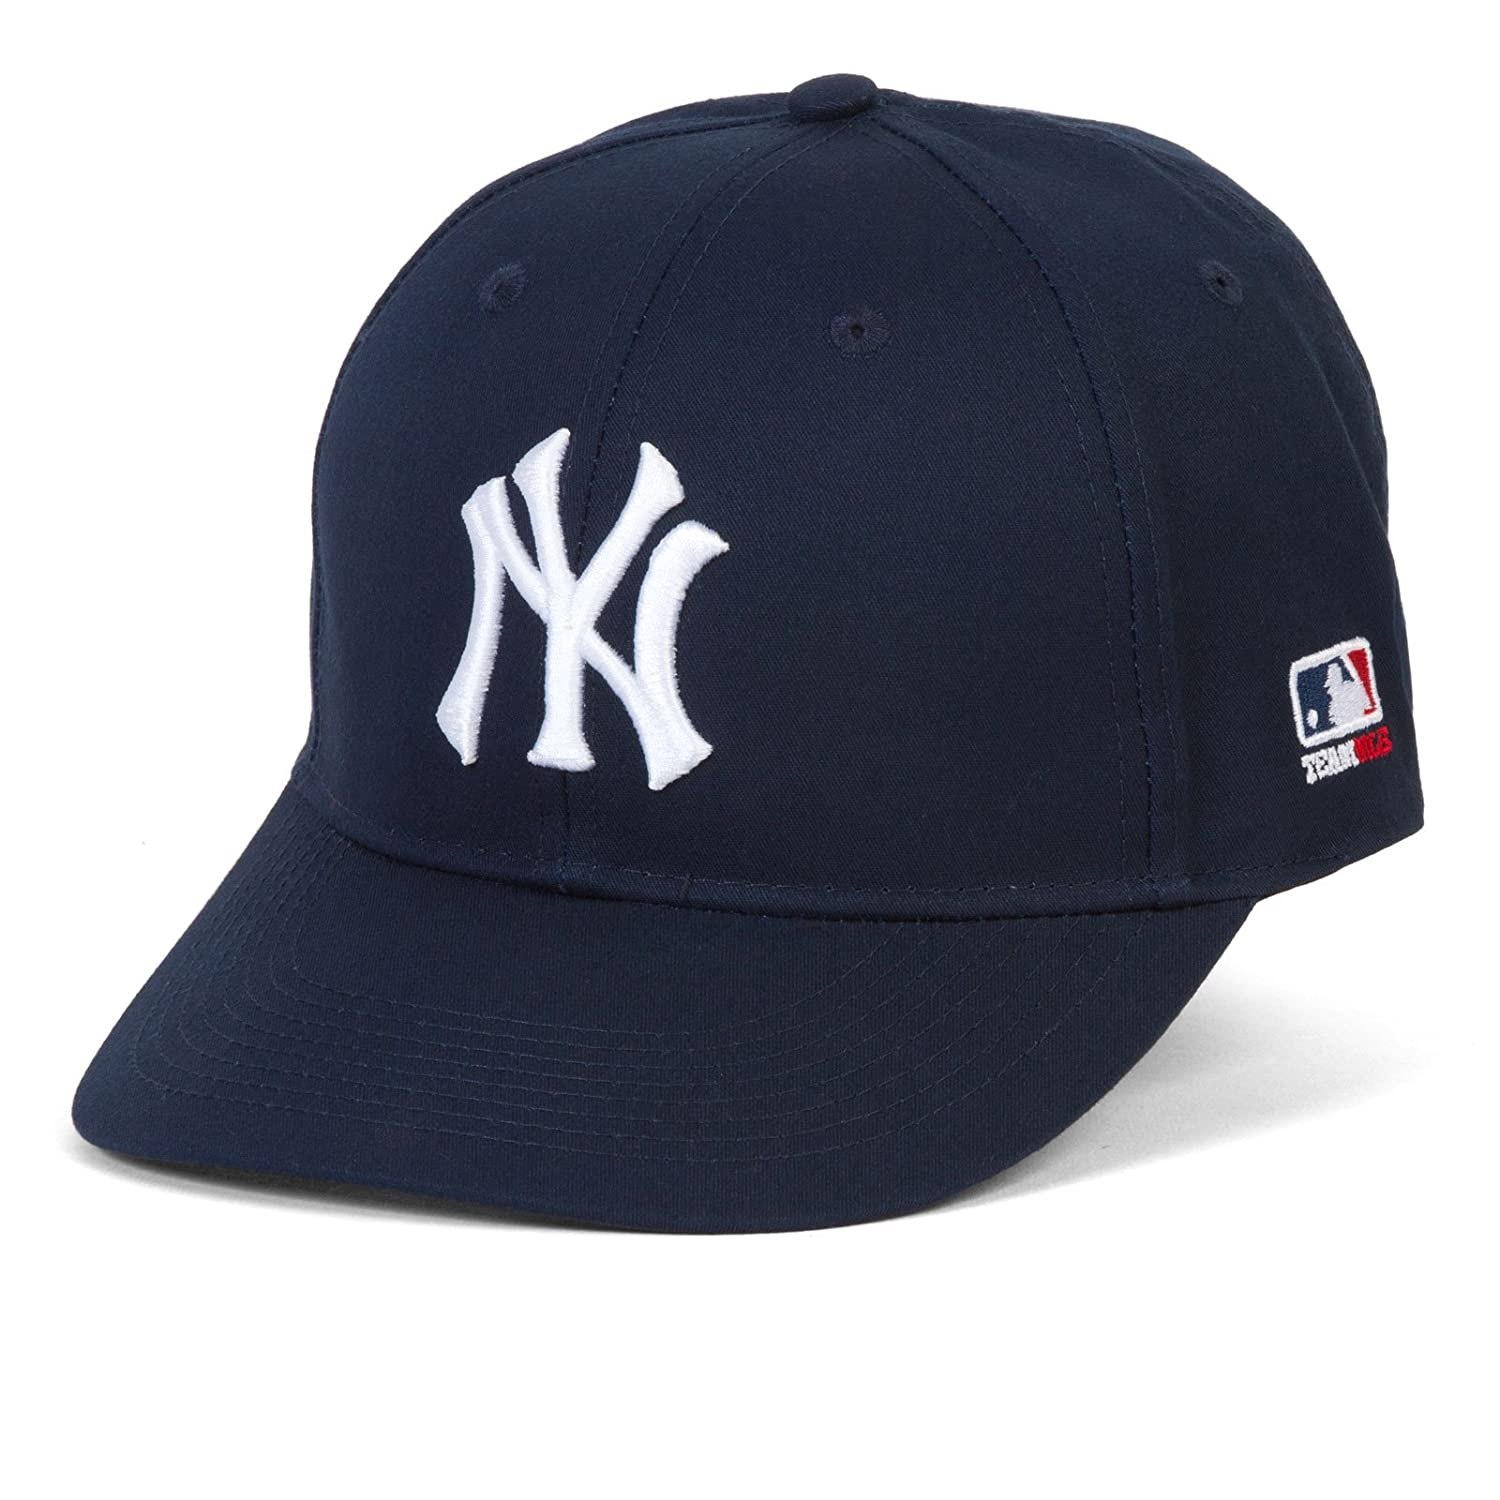 Amazon.com: MLB - New York Yankees / Fan Shop: Sports & Outdoors